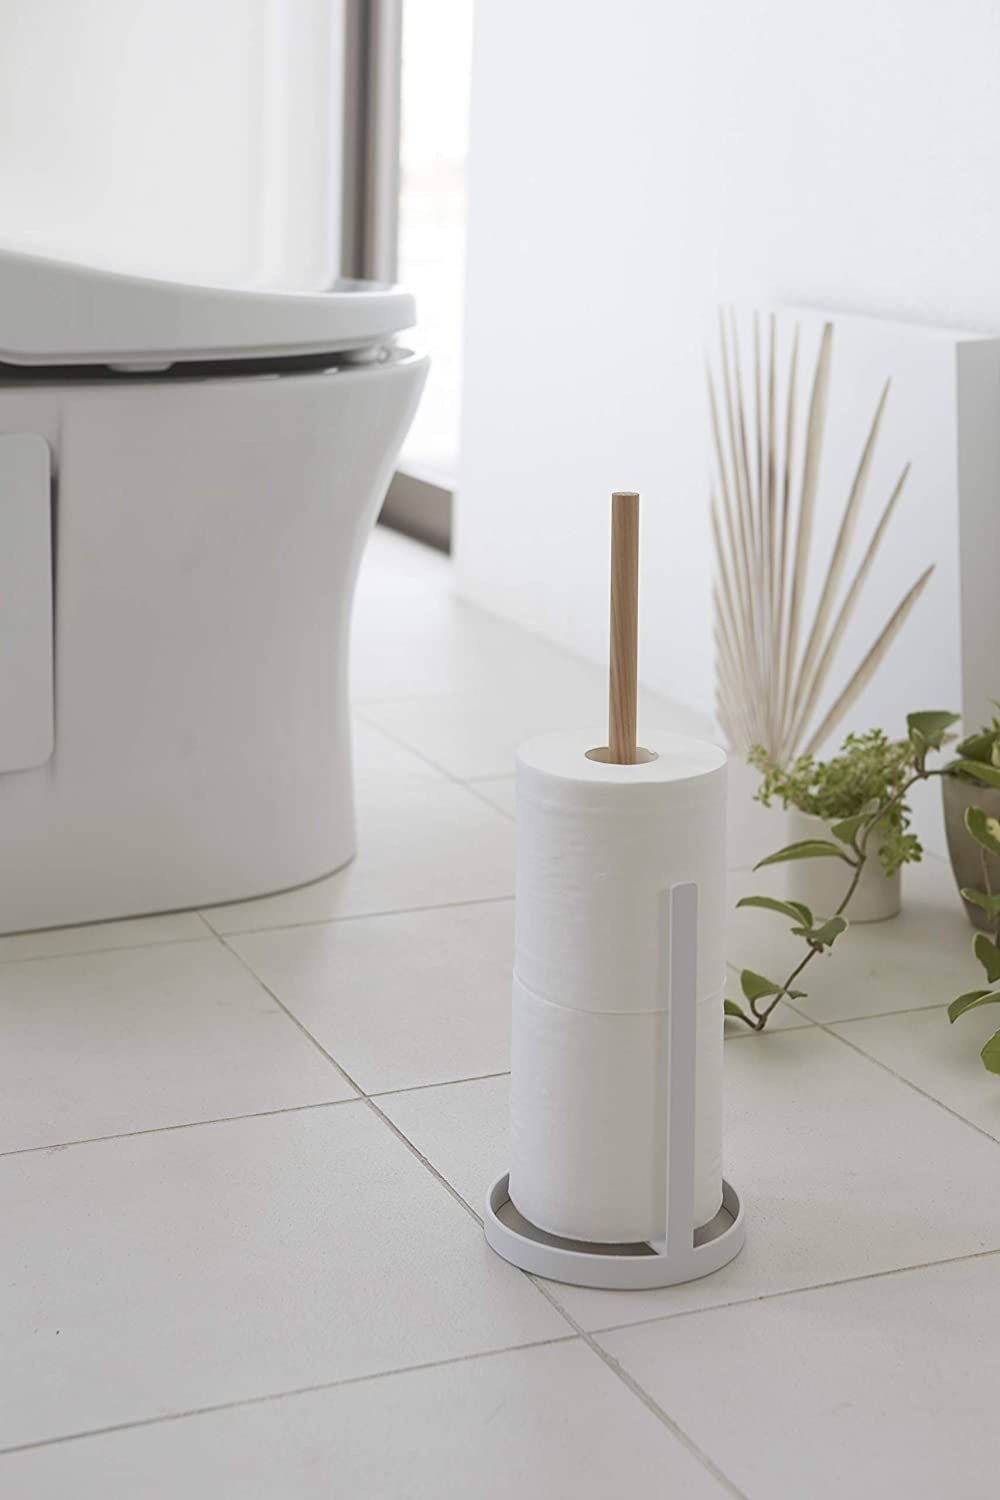 bathroom with white and wood toilet paper towel in a white bathroom